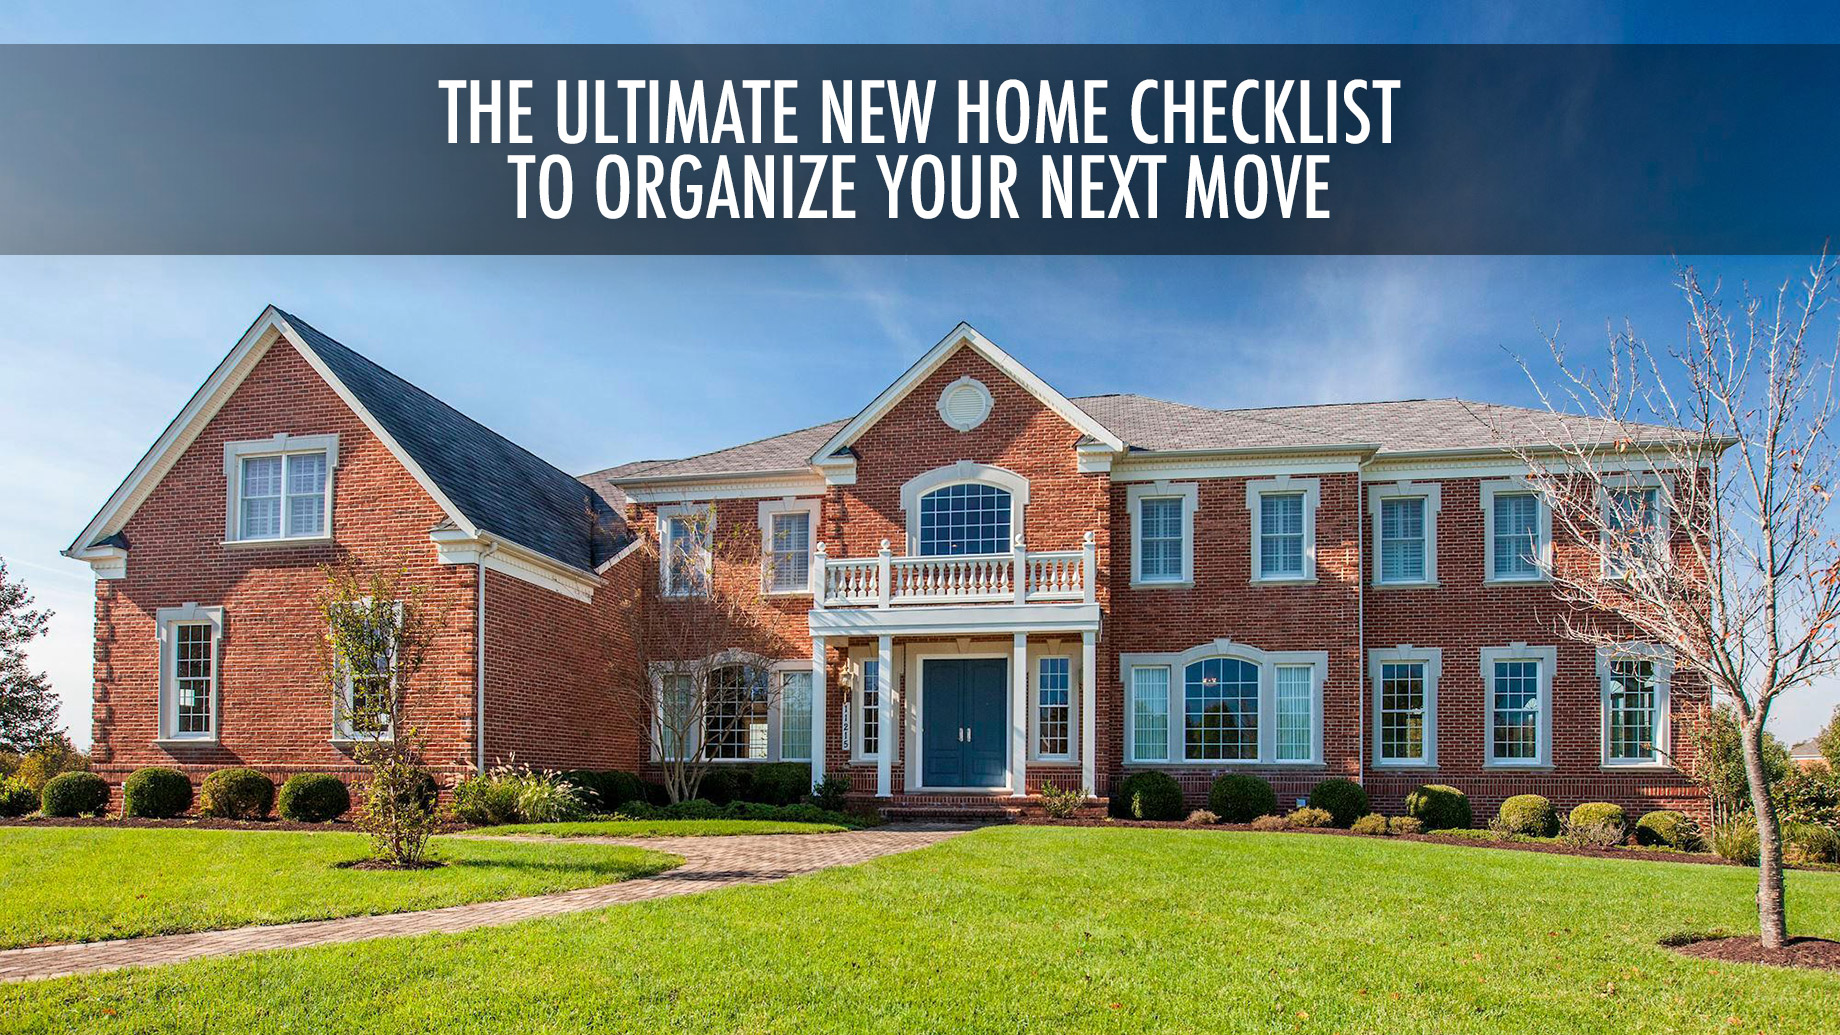 The Ultimate New Home Checklist to Organize Your Next Move